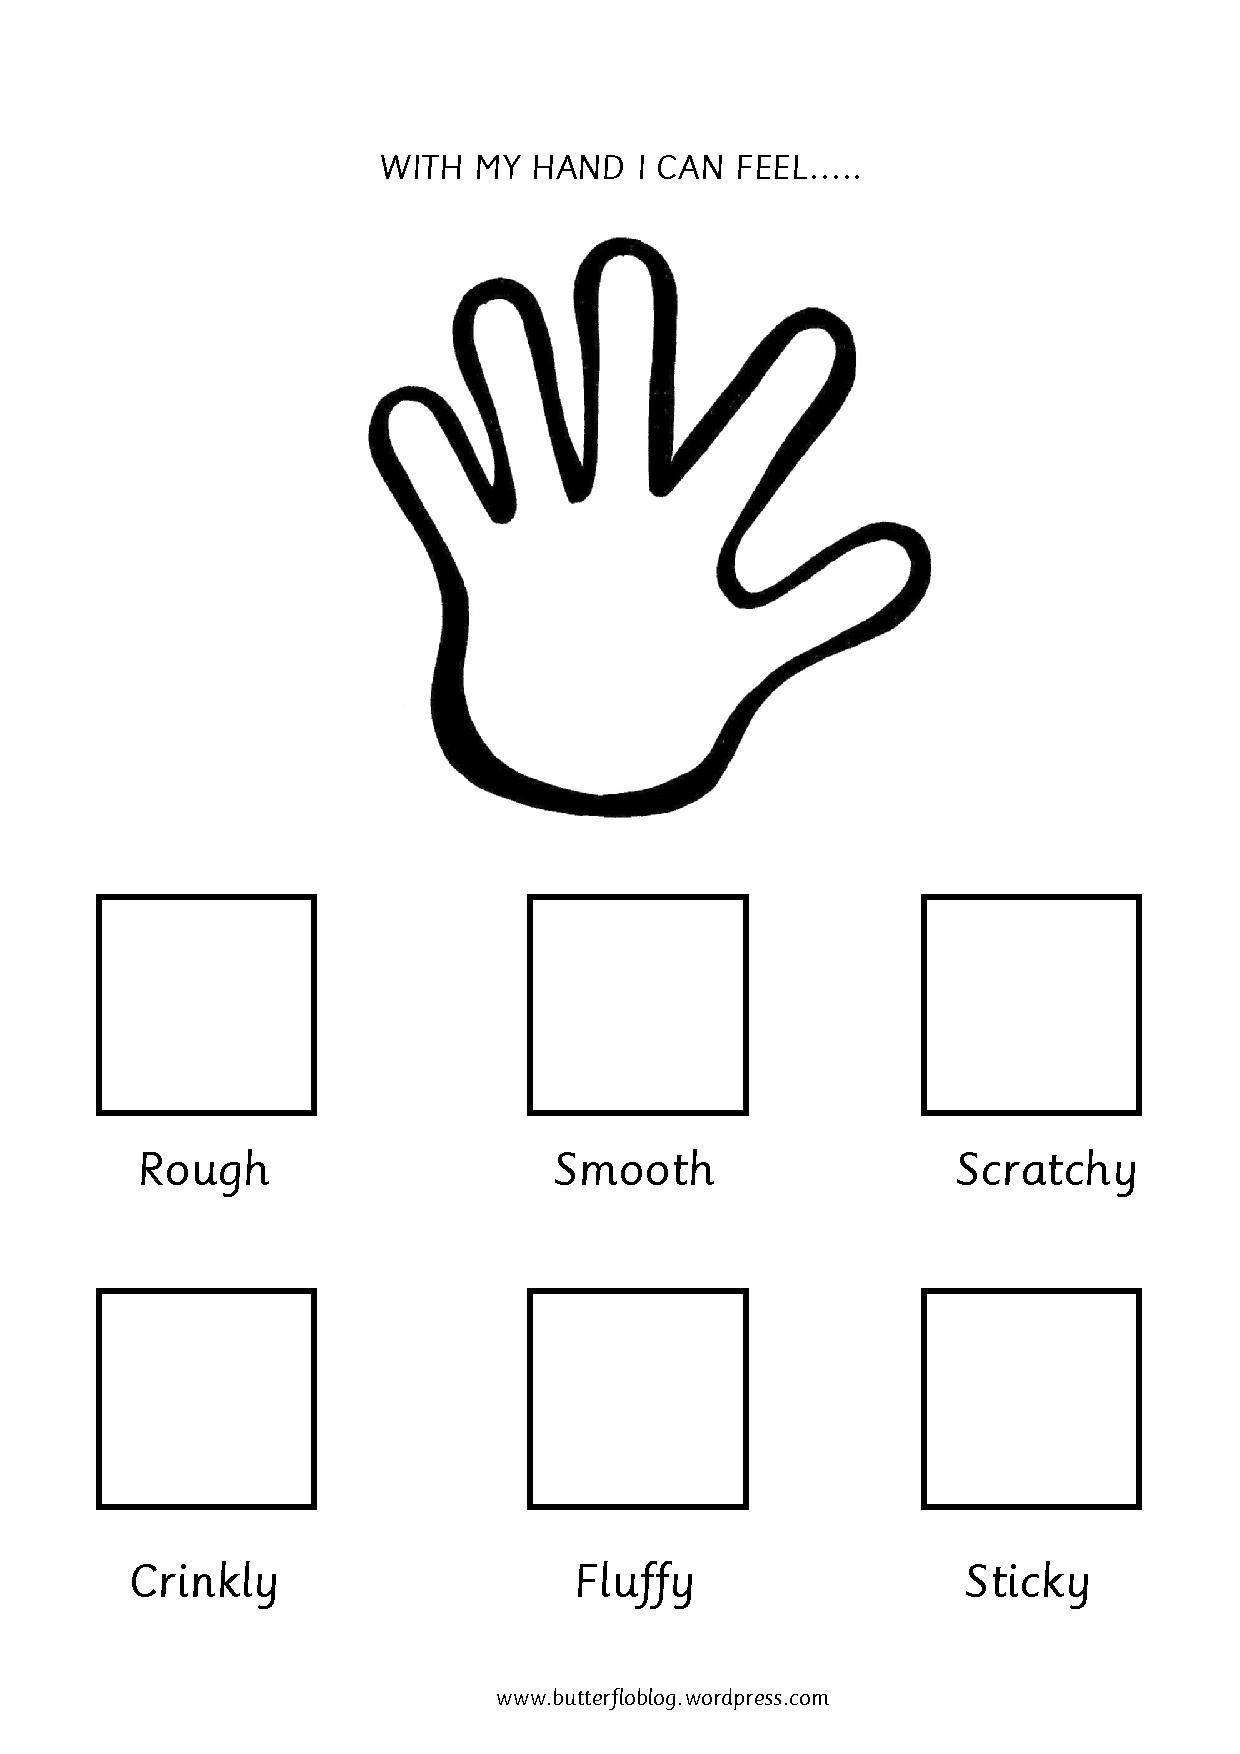 5 Senses Worksheet for Kindergarten the Five Senses touch